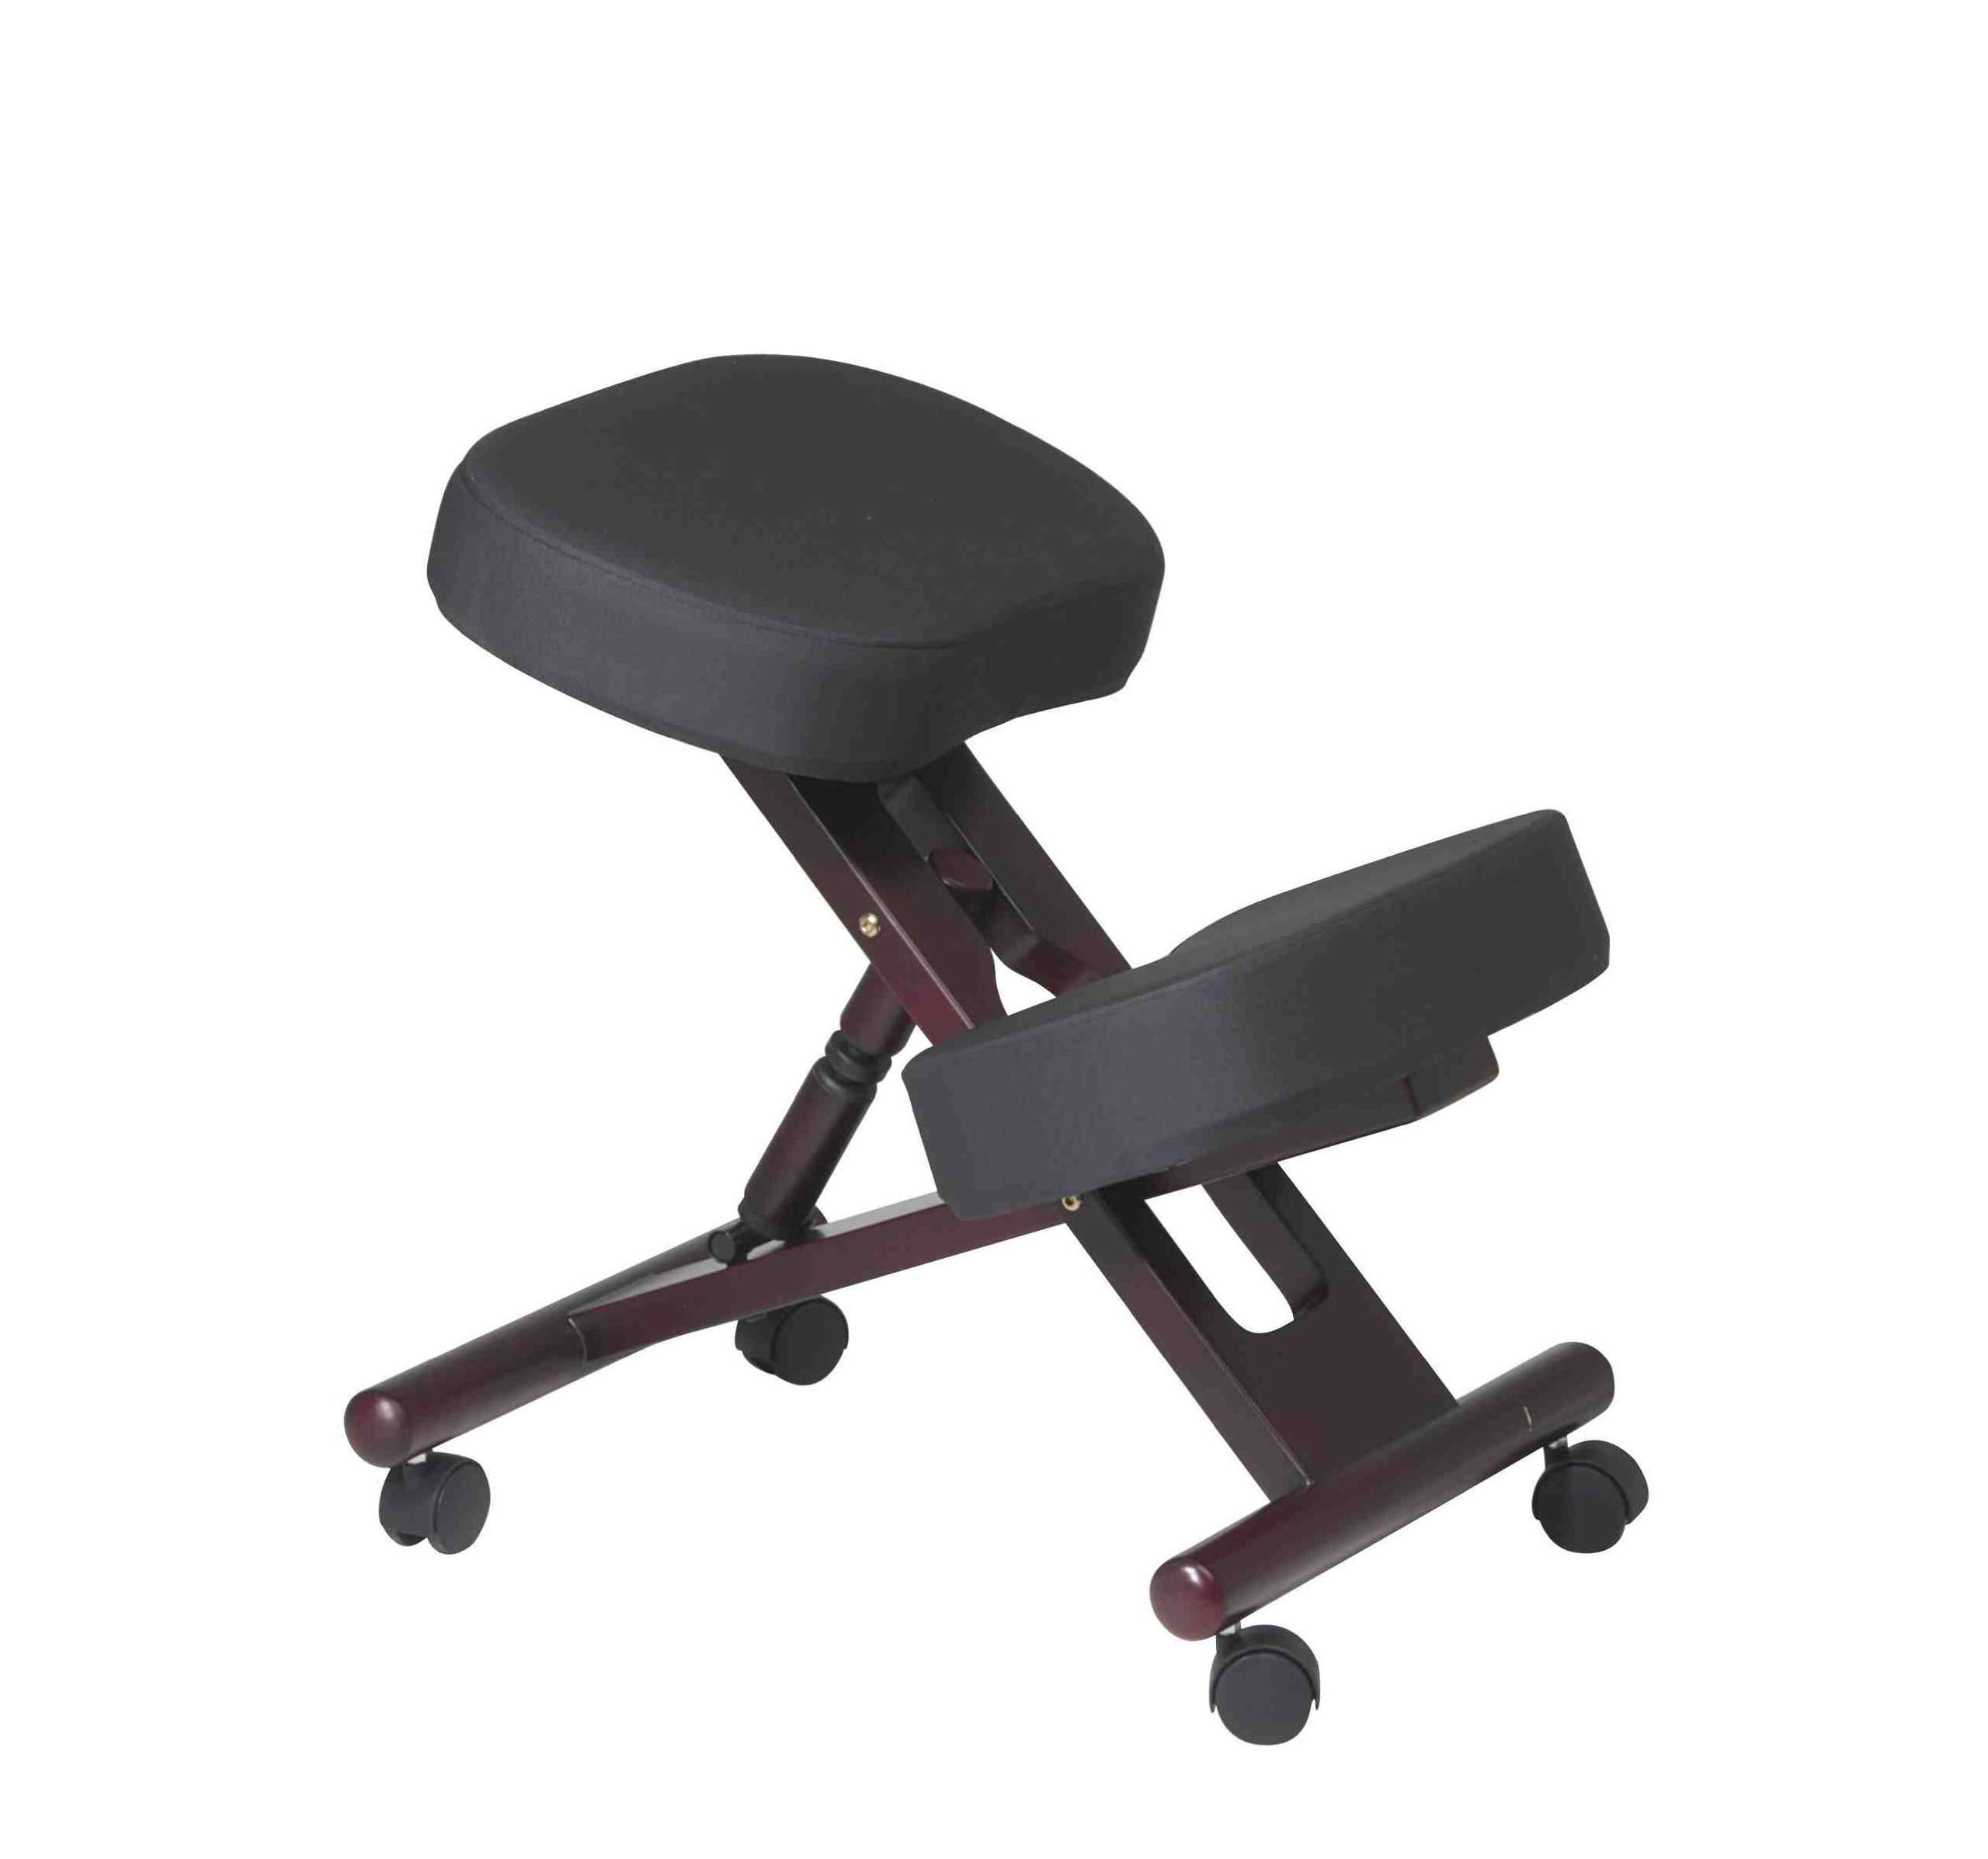 Office Star Ergonomically Designed Knee Chair with Casters, Memory Foam and Mahogany Finished Wood Base, Black by Office Star